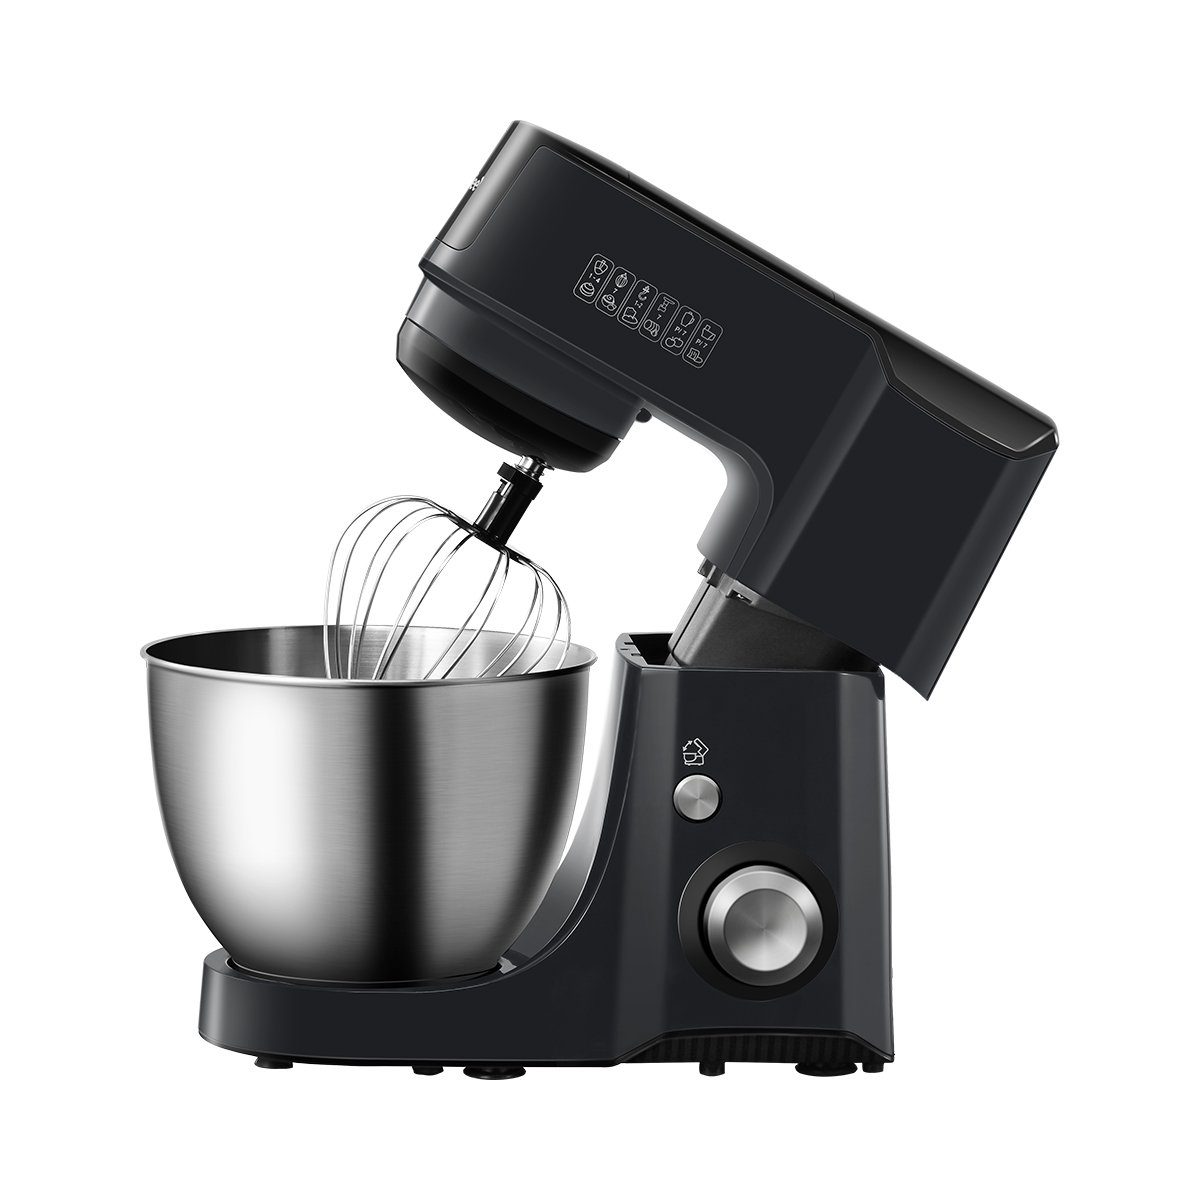 Comfee 4.75Qt 7-in-1 Multi Functions Tilt-Head ABS housing Stand Mixer with SUS Mixing Bowl. 4 Outlets with 7 Speeds & Pulse Control and 15 Minutes Timer Planetary Mixer ¡ by COMFEE' (Image #2)